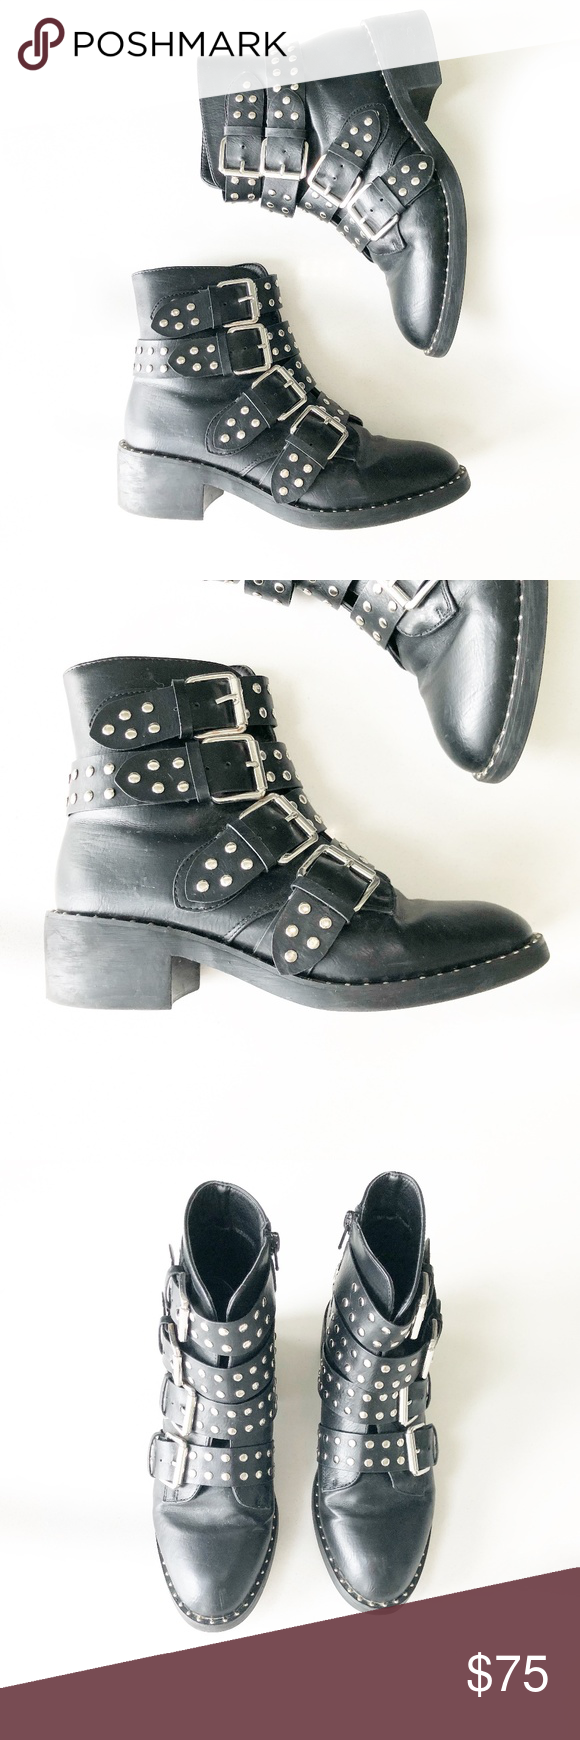 9c3229e6c1a9 Black Studded Buckle Flat Ankle Boots Glamorous Black Studded Buckle Flat  Ankle Boots Faux-leather